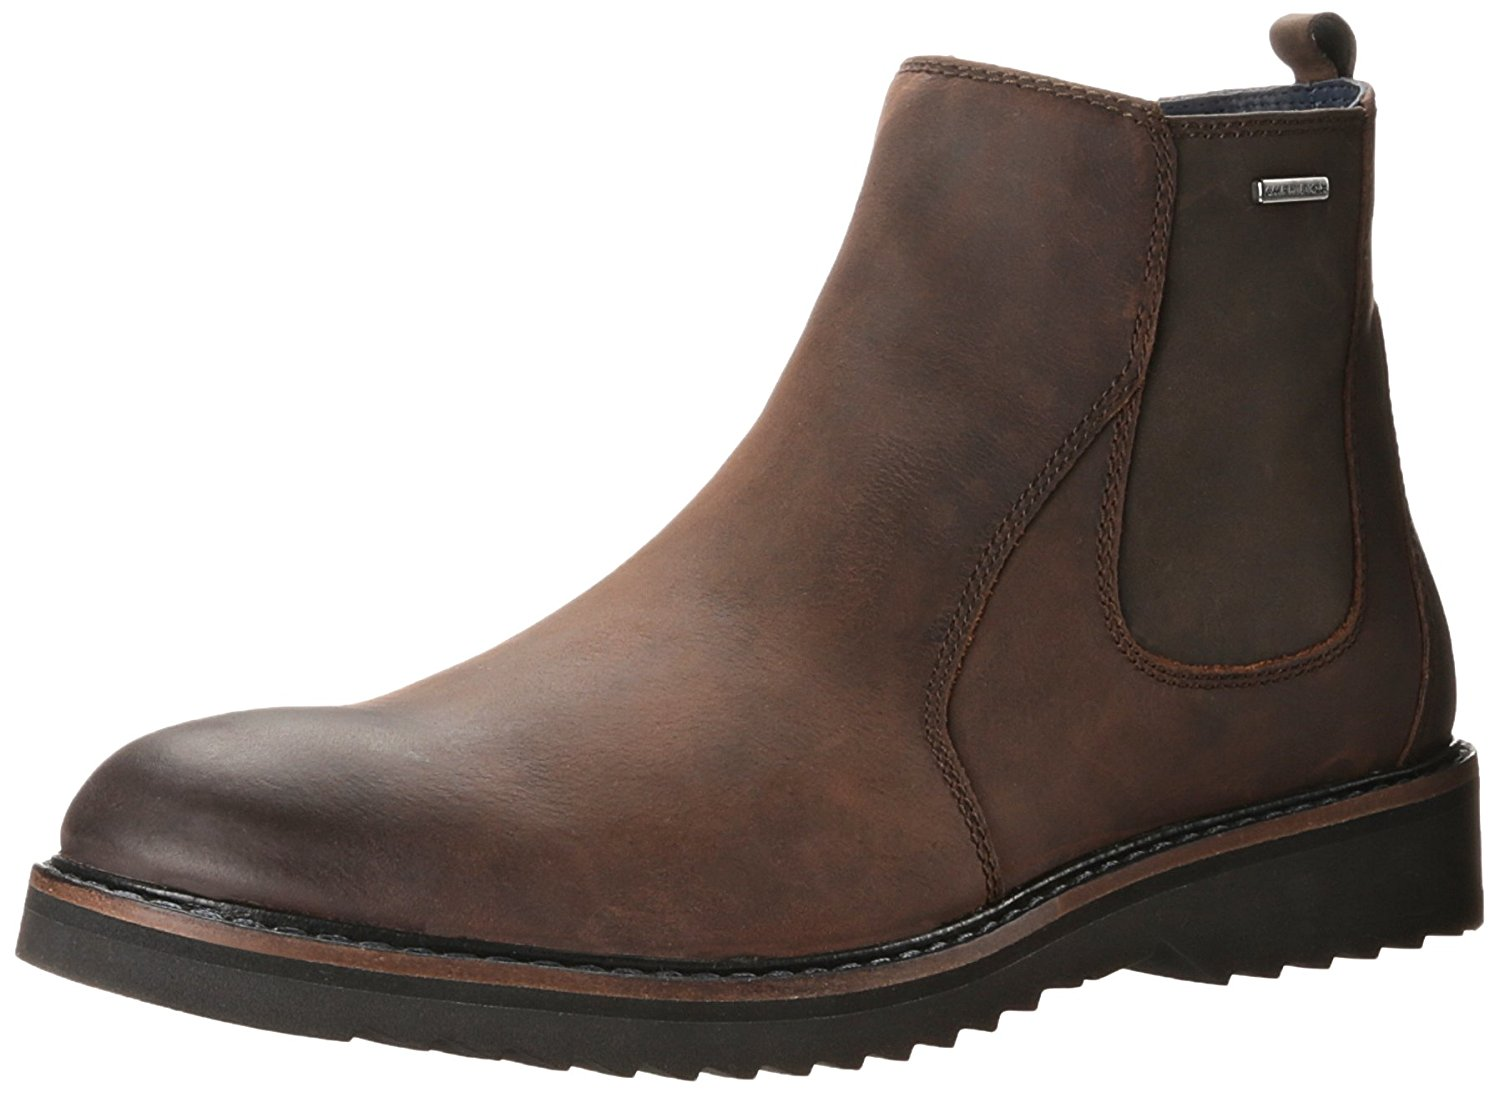 7f9265810180 Buy Geox Mens U Journey Chelsea Boot in Cheap Price on Alibaba.com